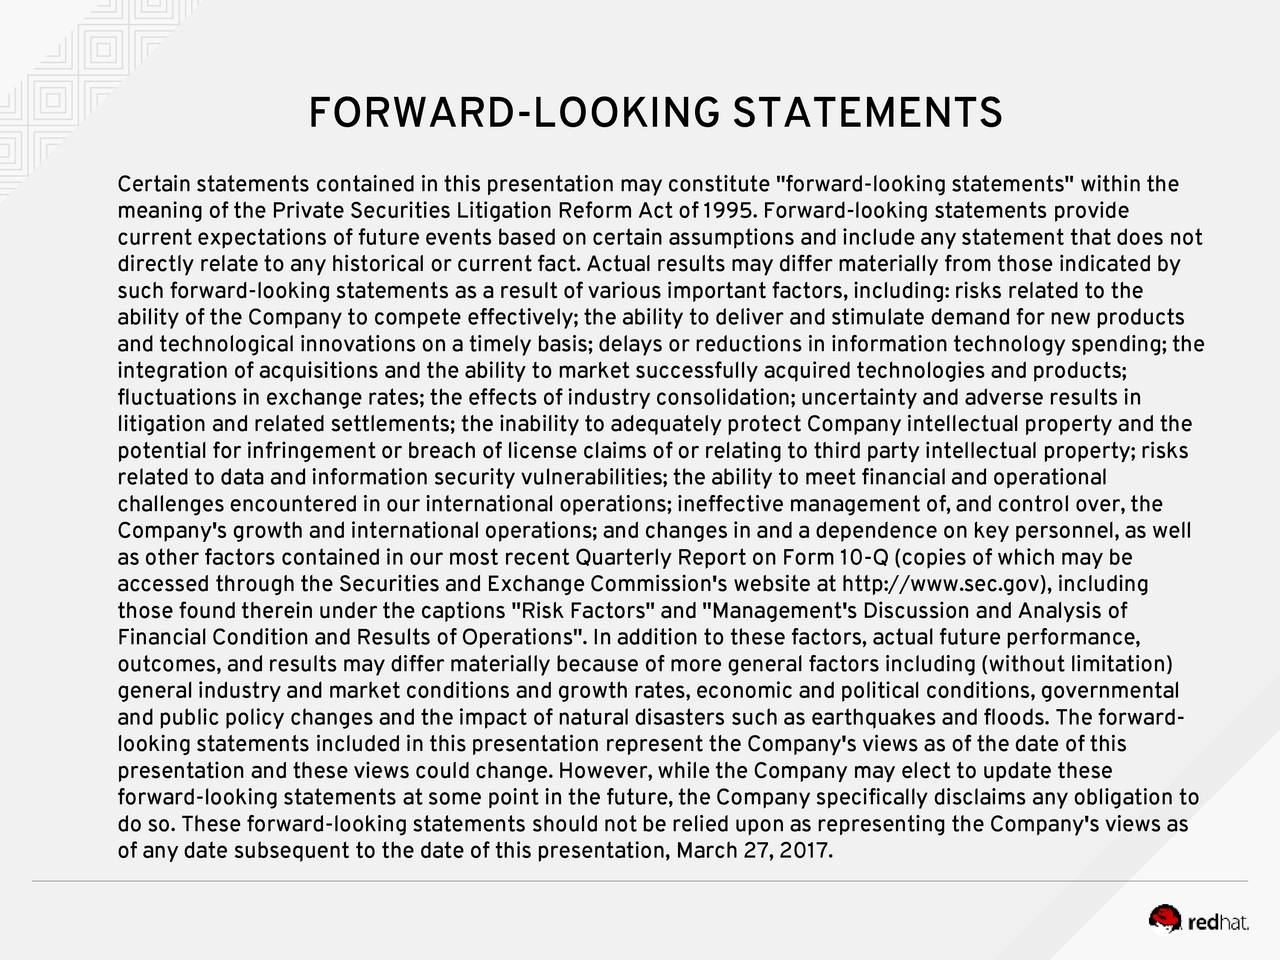 """Certain statements contained in thispresentation may constitute """"forward-looking statements"""" within the meaning of the Private Securities Litigation Reform Act of 1995. Forward-looking statements provide current expectations of future events based on certain assumptions and include any statement that does not directly relate to any historical or current fact. Actual results may differ materially from those indicated by such forward-looking statements as a result of various important factors, including: risks related to the ability of the Company to compete effectively; the ability to deliver and stimulate demand for new products and technological innovations on a timely basis; delays or reductions in information technology spending; the integration of acquisitions and the ability to market successfully acquired technologies and products; fluctuations in exchange rates; the effects of industry consolidation; uncertainty and adverse results in litigation and related settlements; the inability to adequately protect Company intellectual property and the potential for infringement or breach of license claims of or relating to third party intellectual property; risks related to data and information security vulnerabilities; the ability to meet financial andoperational challenges encountered in our international operations; ineffective management of, and control over, the Company's growth and international operations; and changes in and a dependence on key personnel, as well as other factors contained in our most recent Quarterly Report on Form 10-Q (copies of which may be accessed through the Securities and Exchange Commission's website at http://www.sec.gov), including those found therein under the captions """"Risk Factors"""" and """"Management's Discussion and Analysis of Financial Condition and Results of Operations"""". In addition to these factors, actual future performance, outcomes, and results may differ materially because of more general factors including (without limitati"""